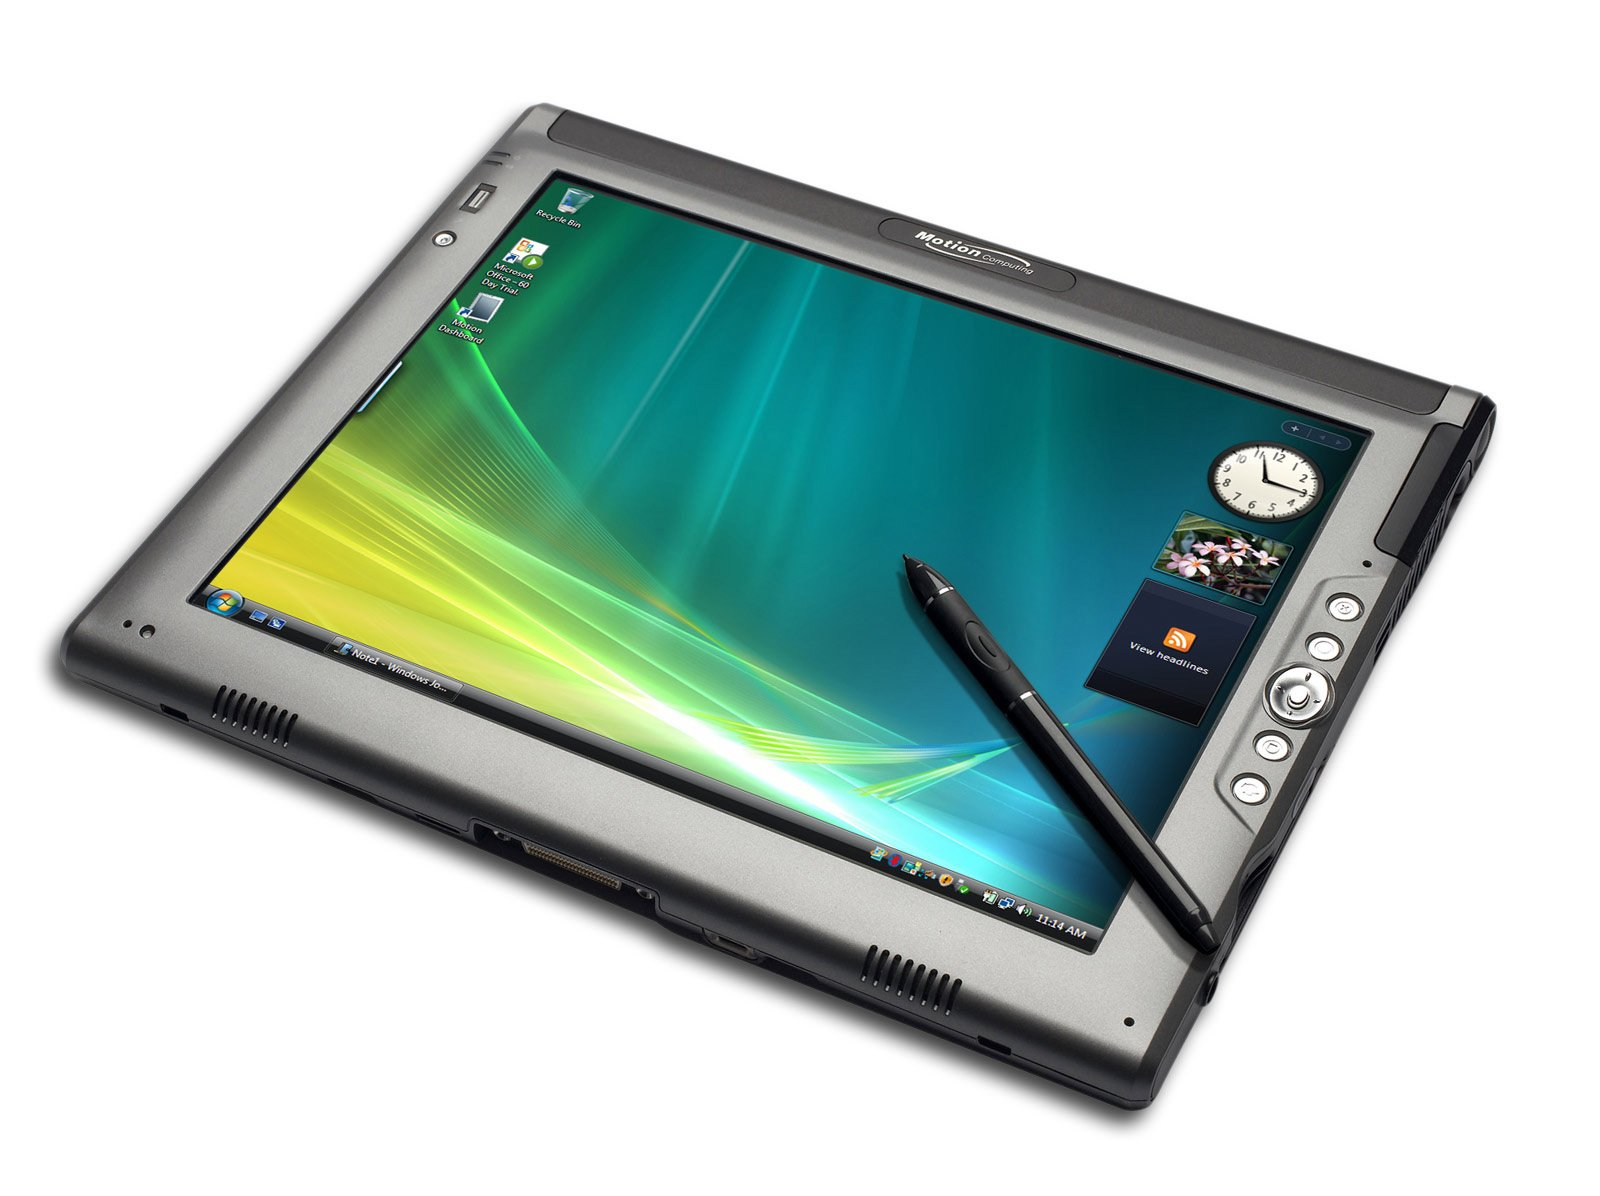 POSRUS Antiglare Touch Screen Protector for Motion Computing LE1700 Tablets